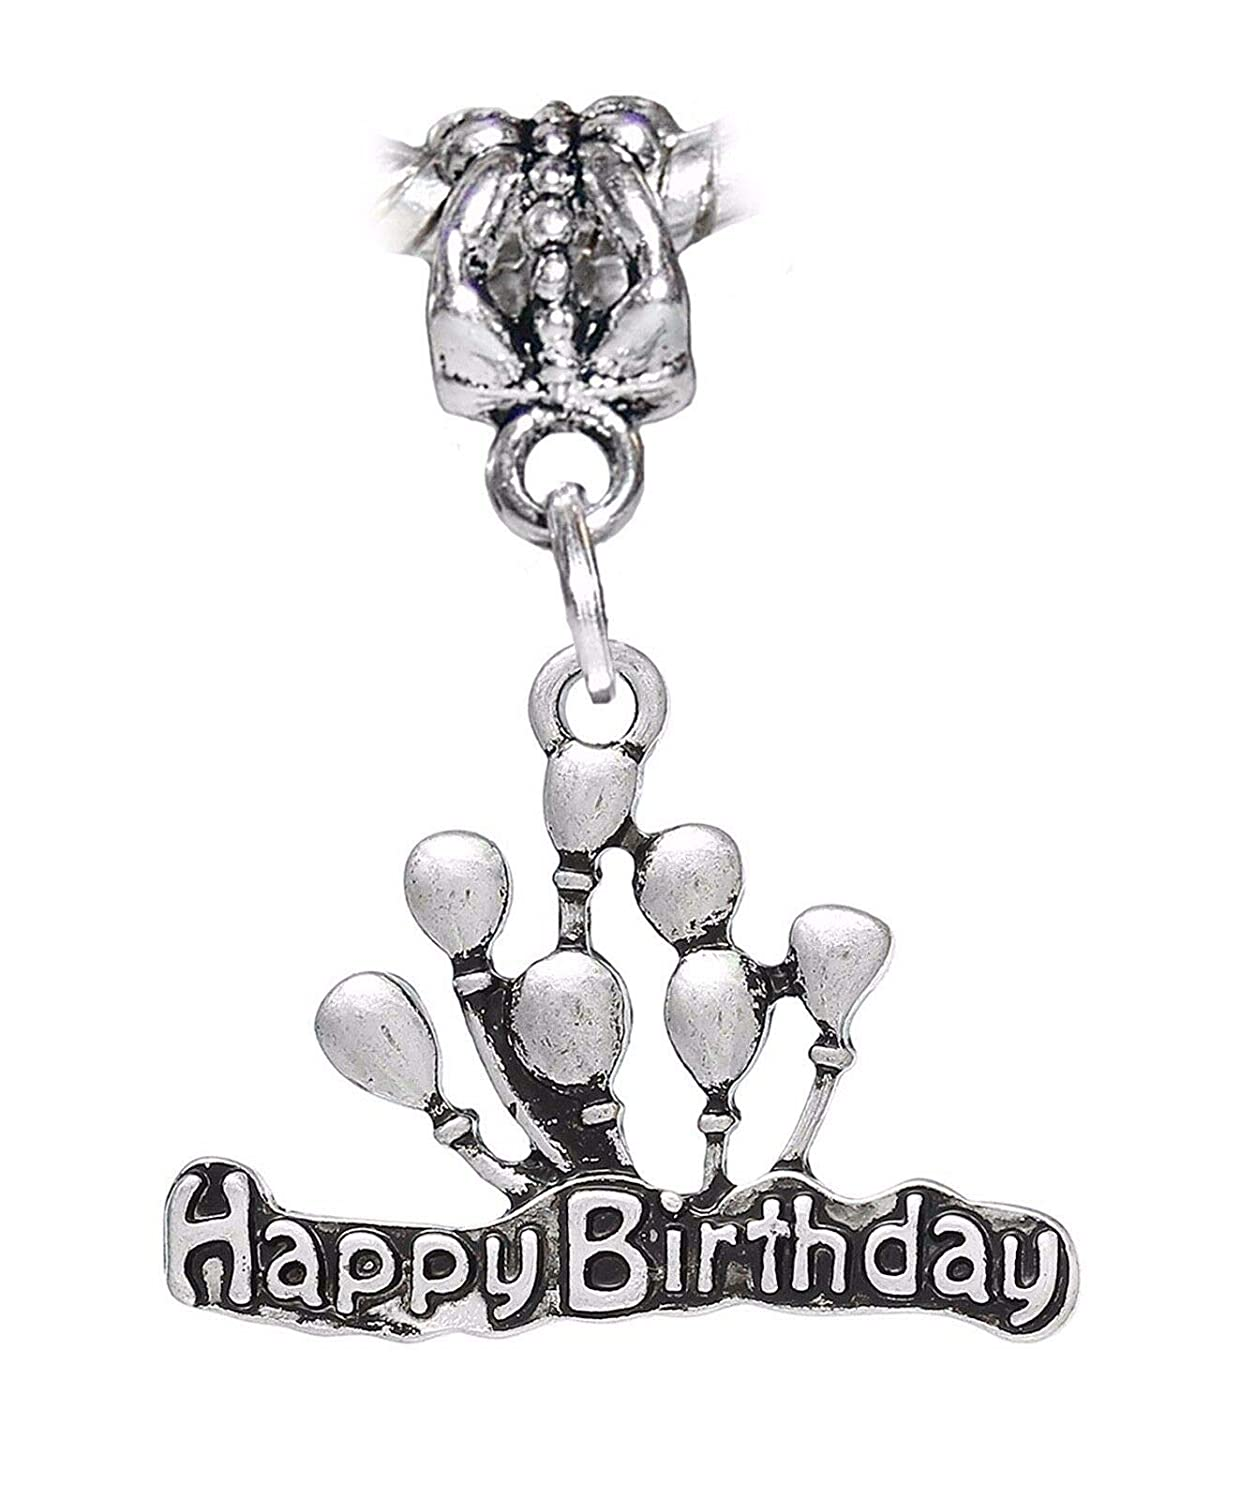 Happy Birthday Balloons Word Party Gift Dangle Charm for European Bead Bracelets